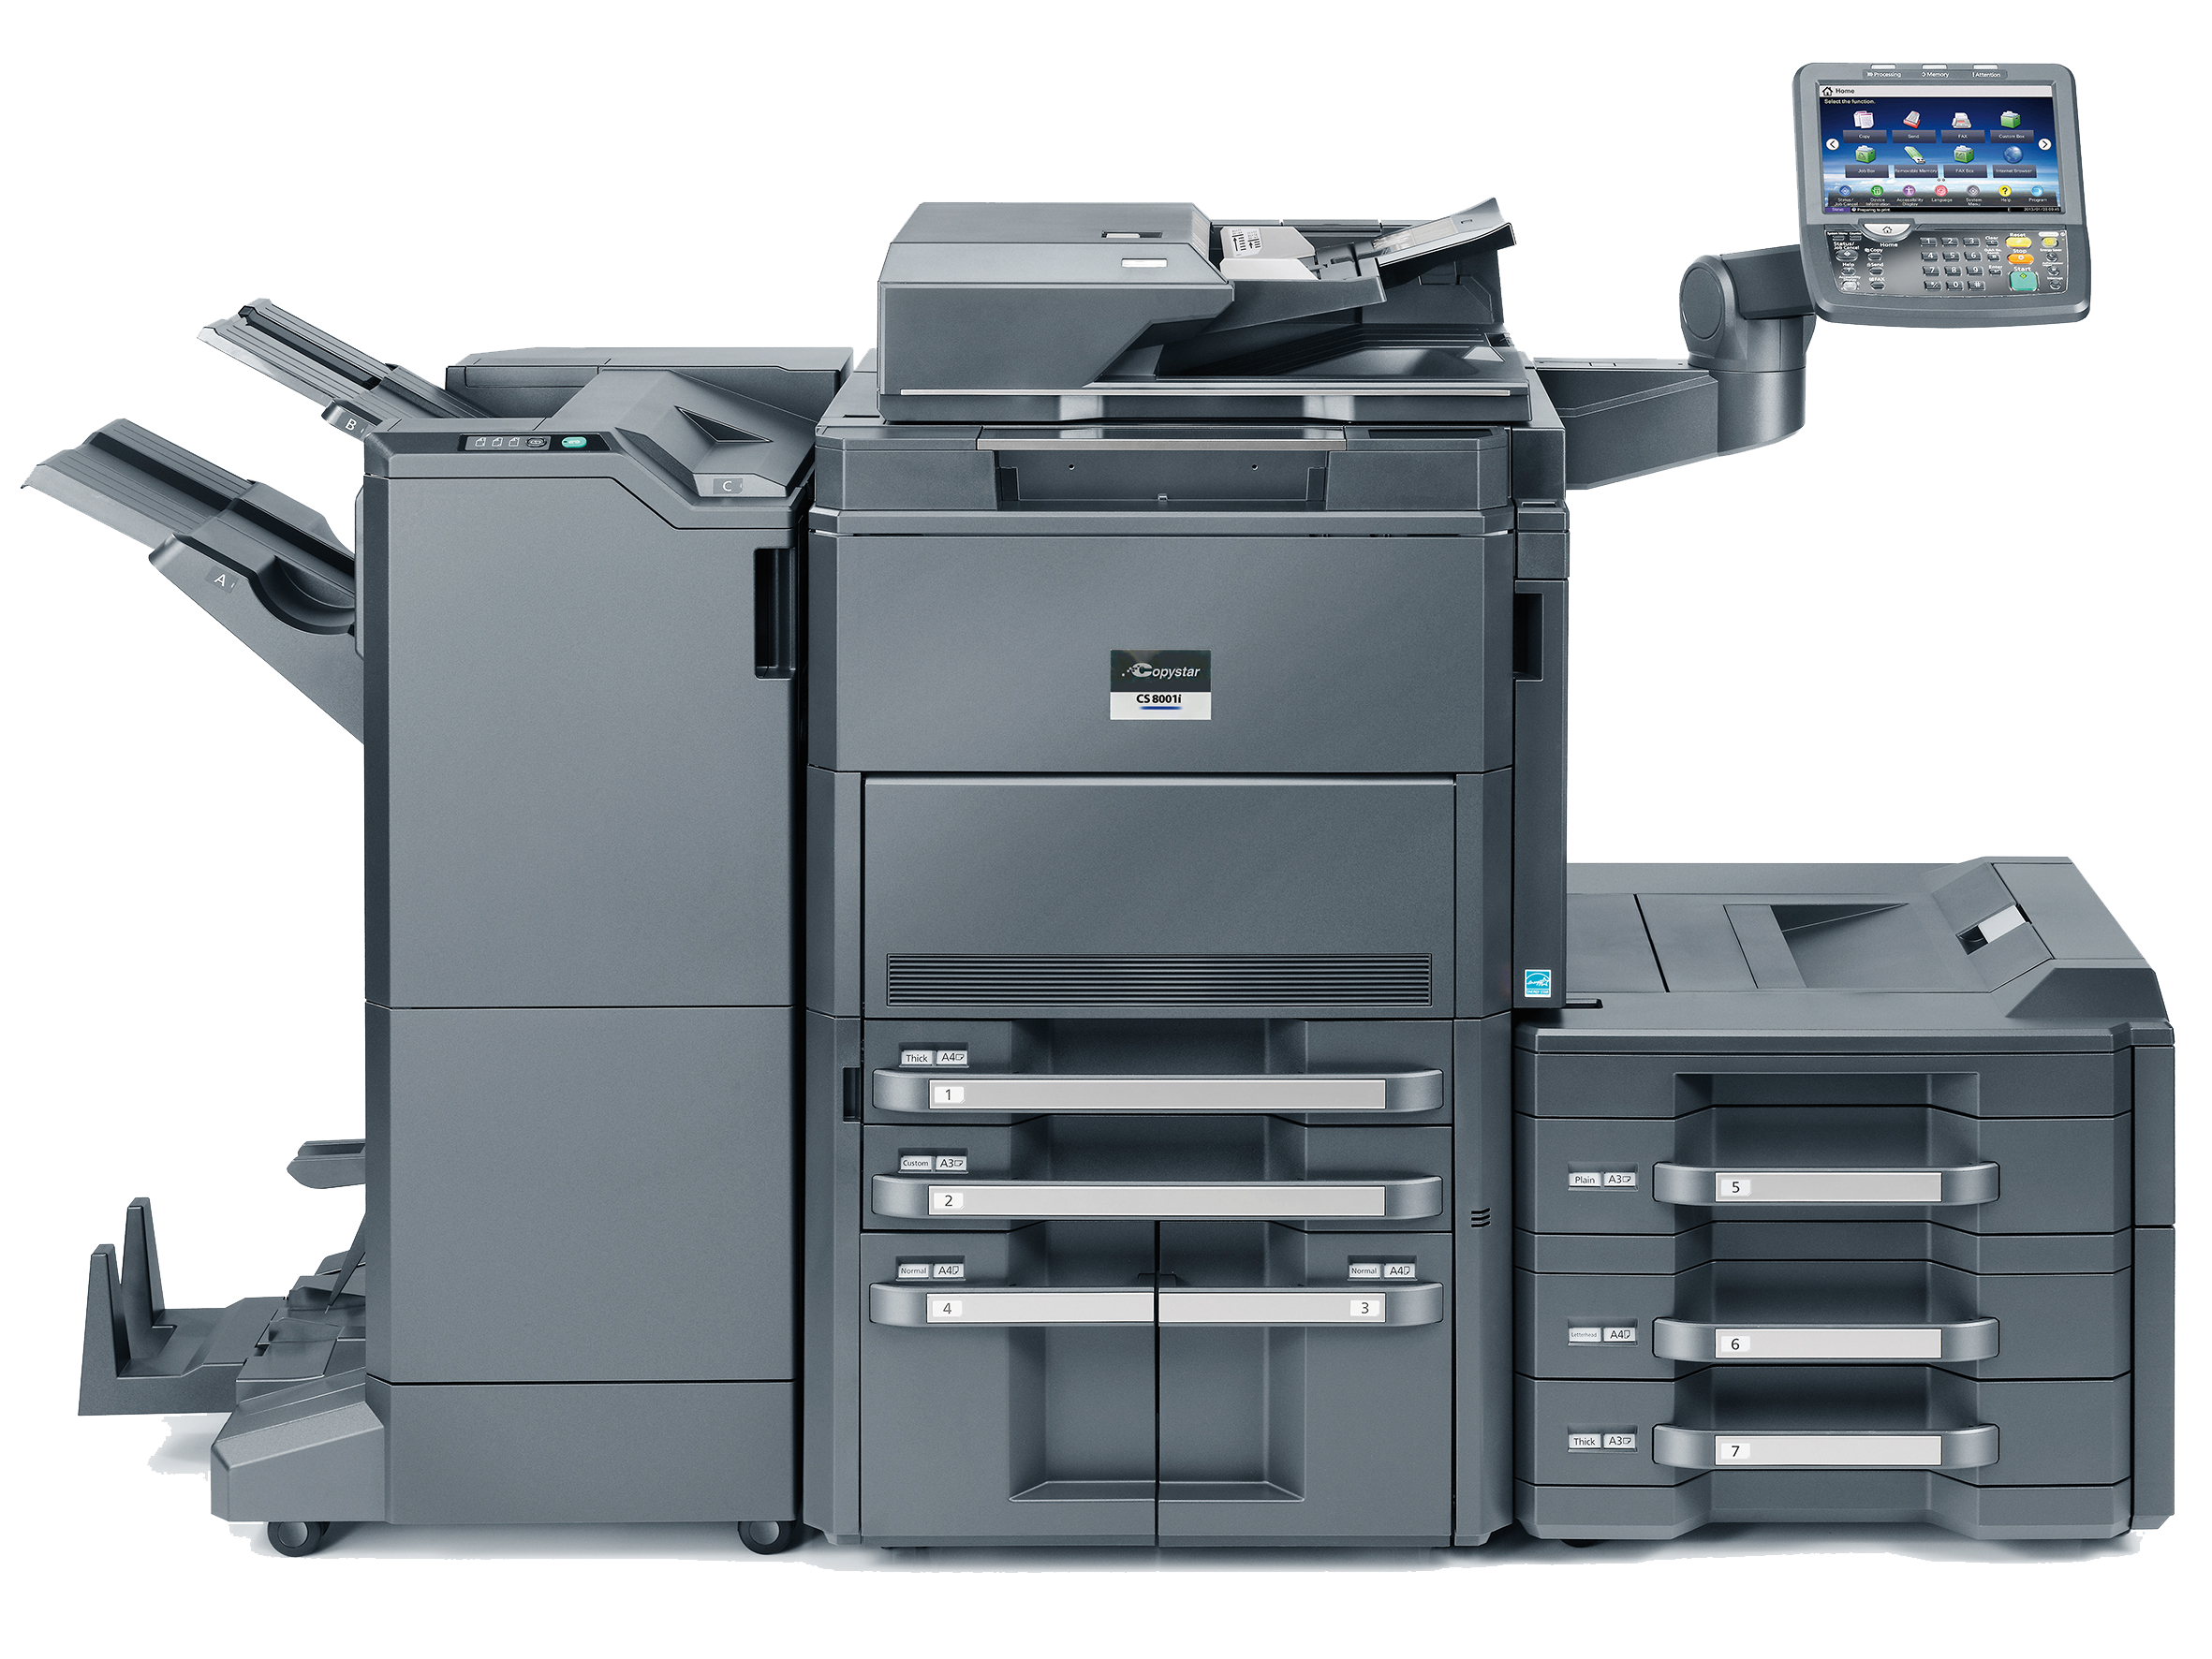 Panasonic Copystar Copier Lease